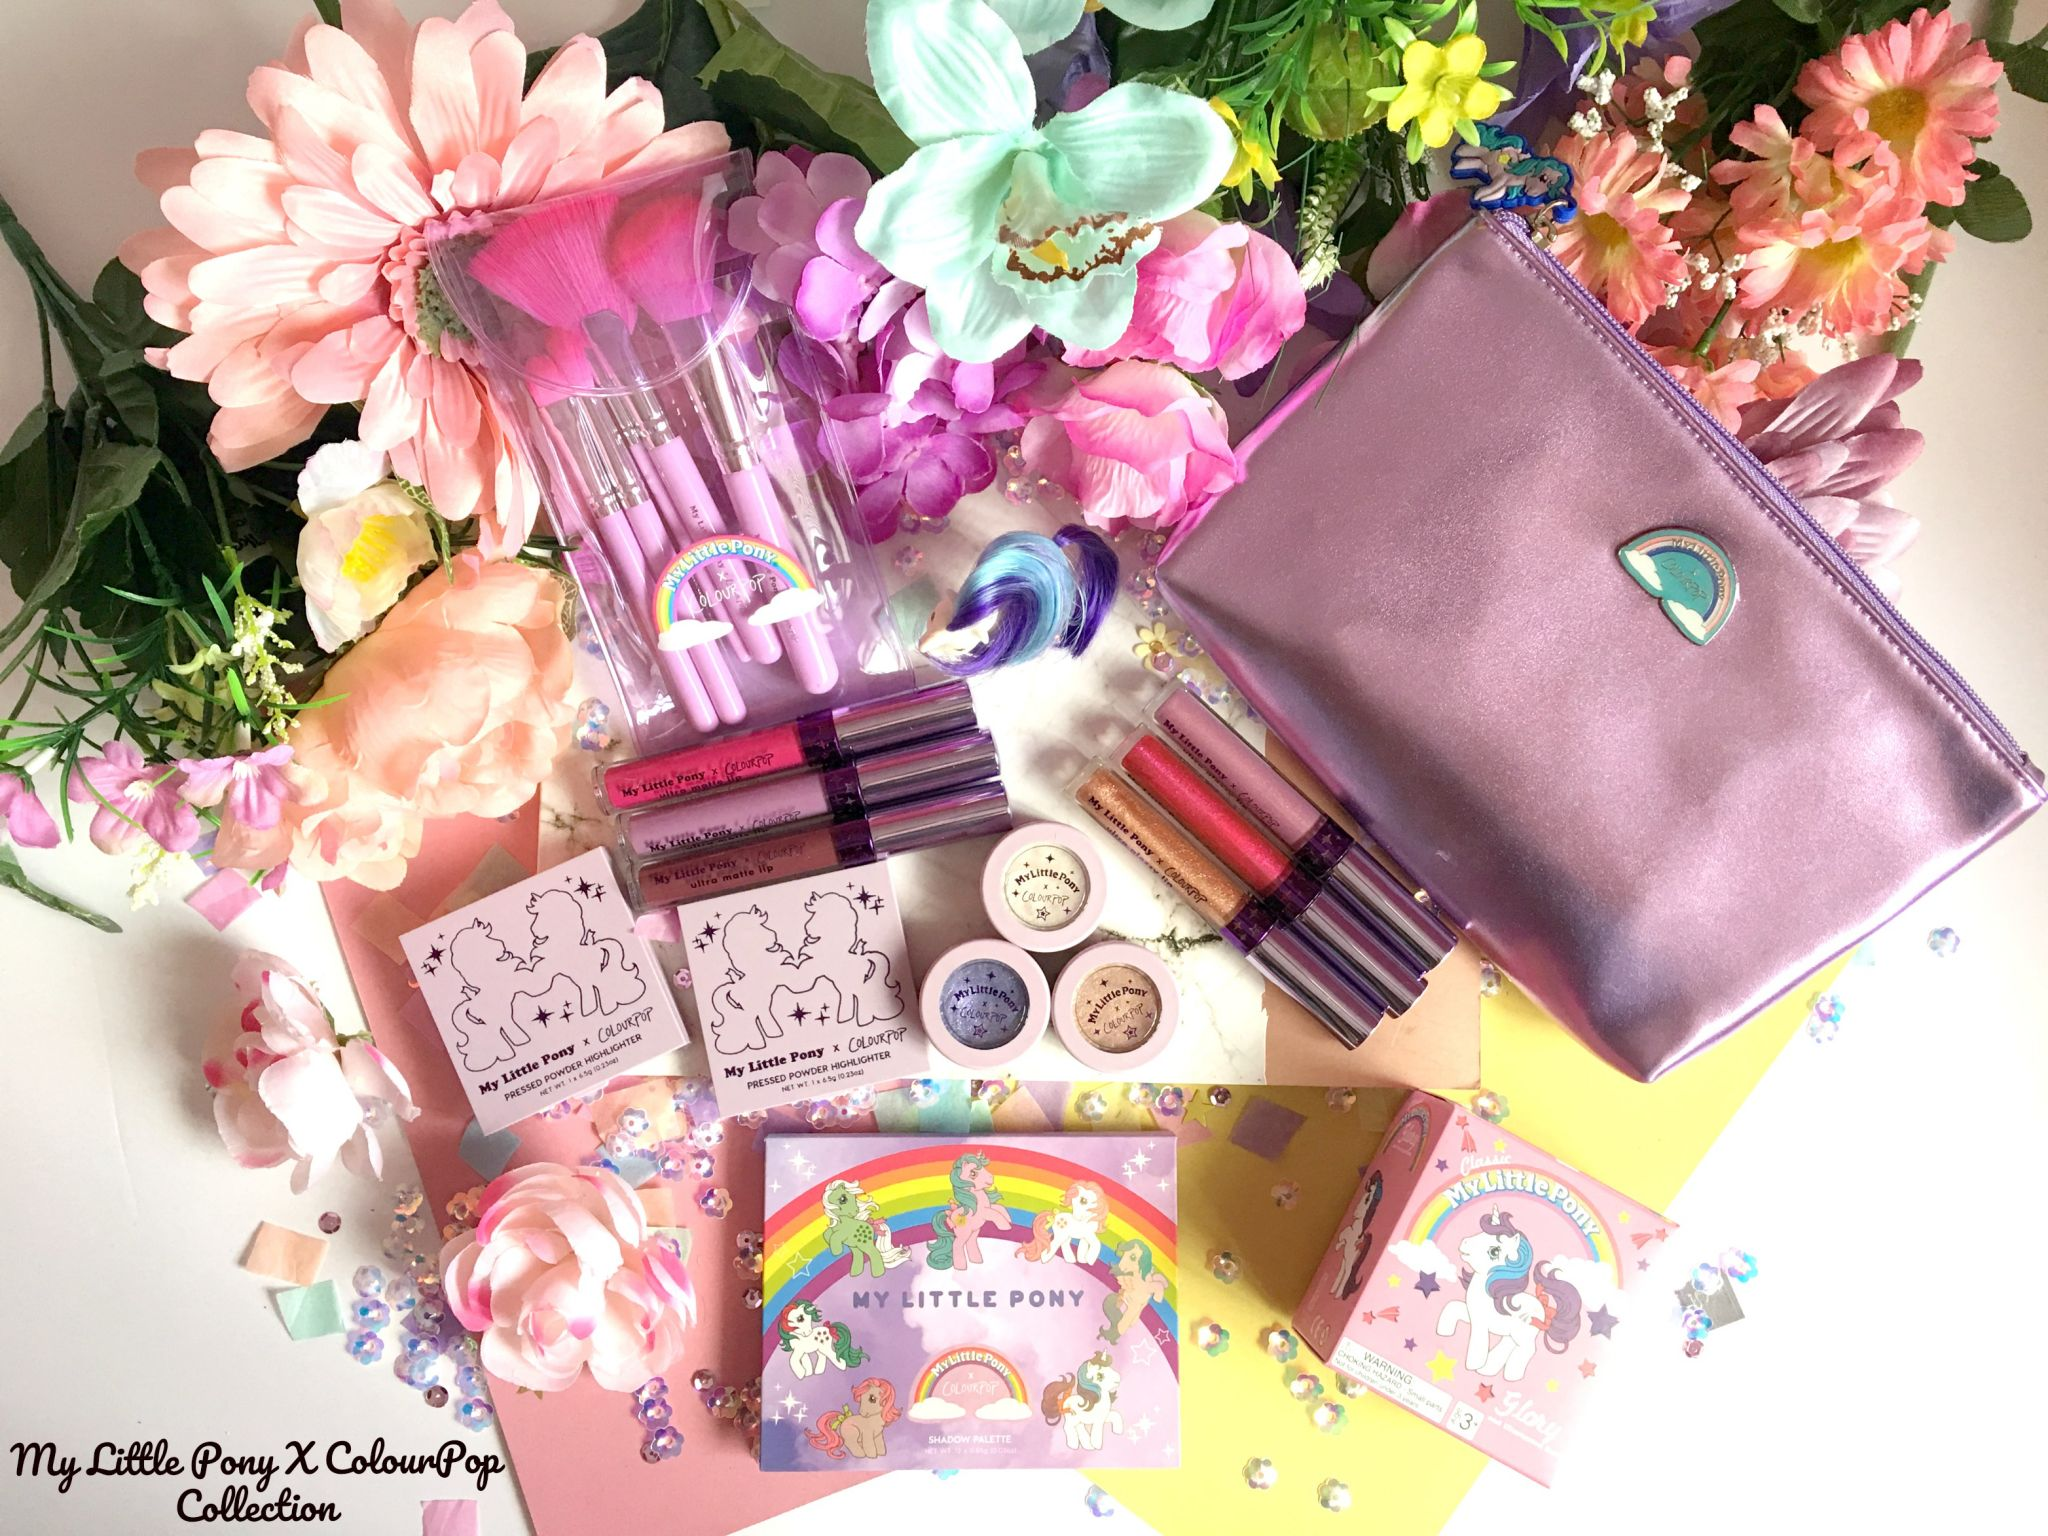 My Little Pony x ColourPop Collection